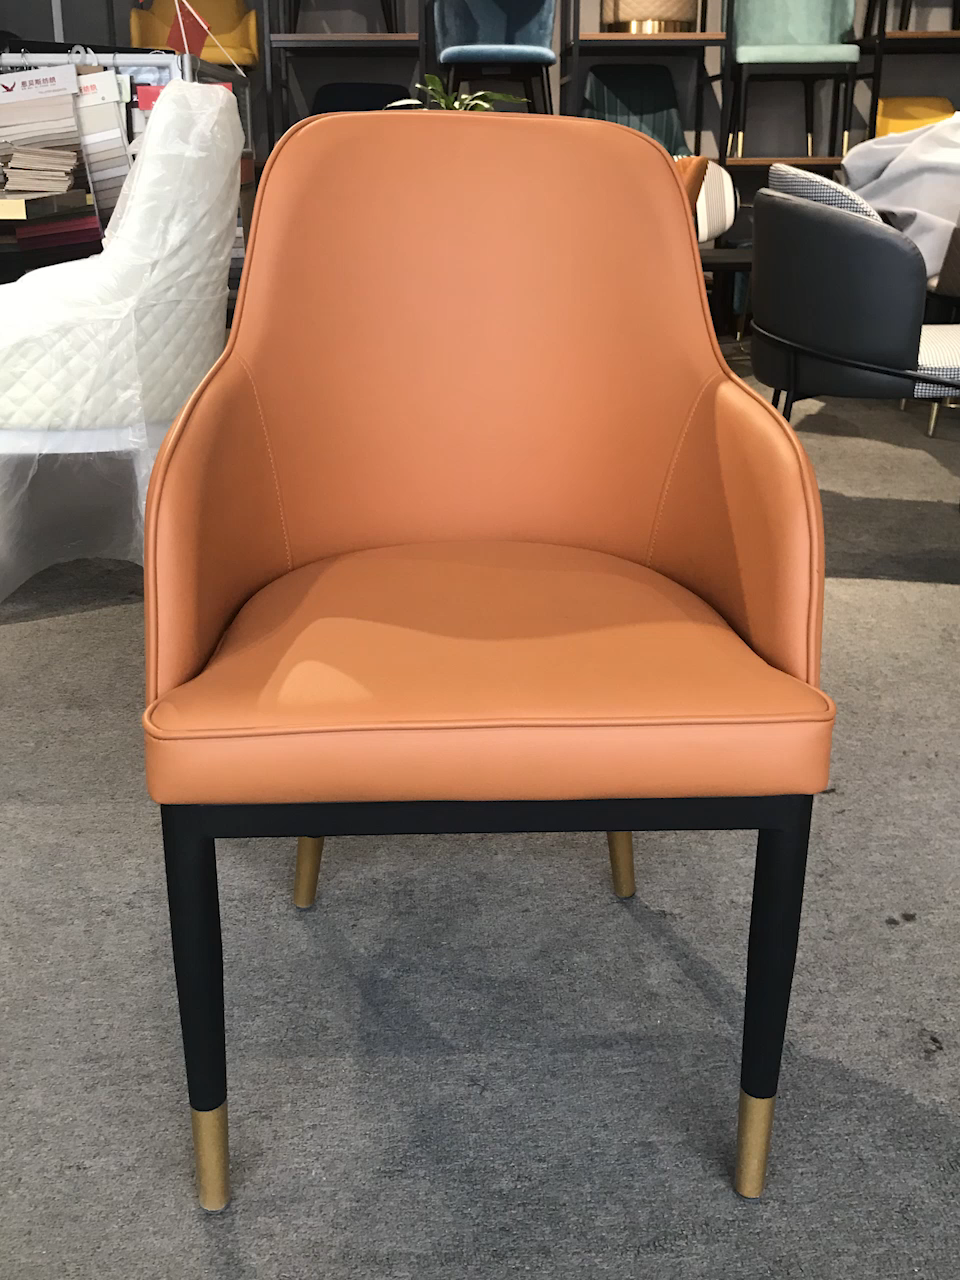 Modern cafe chairs and tables ( NY8017 & NY8027 )